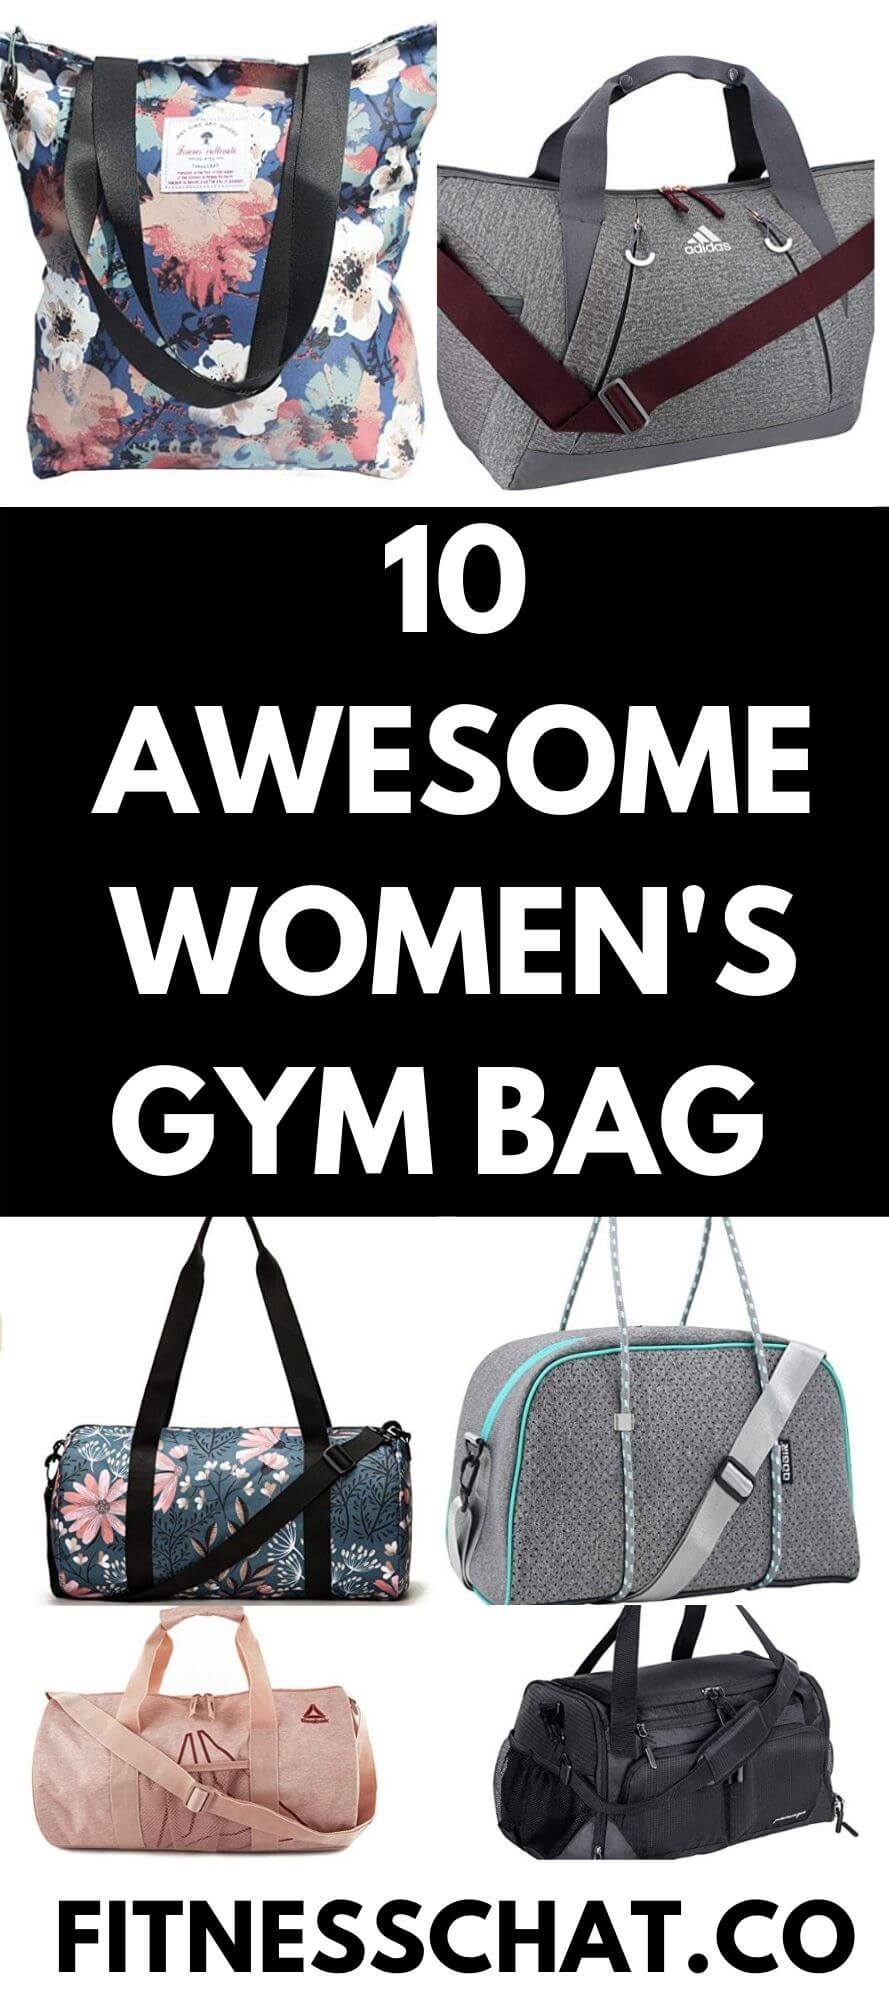 cute gym bags. gym bag with compartments